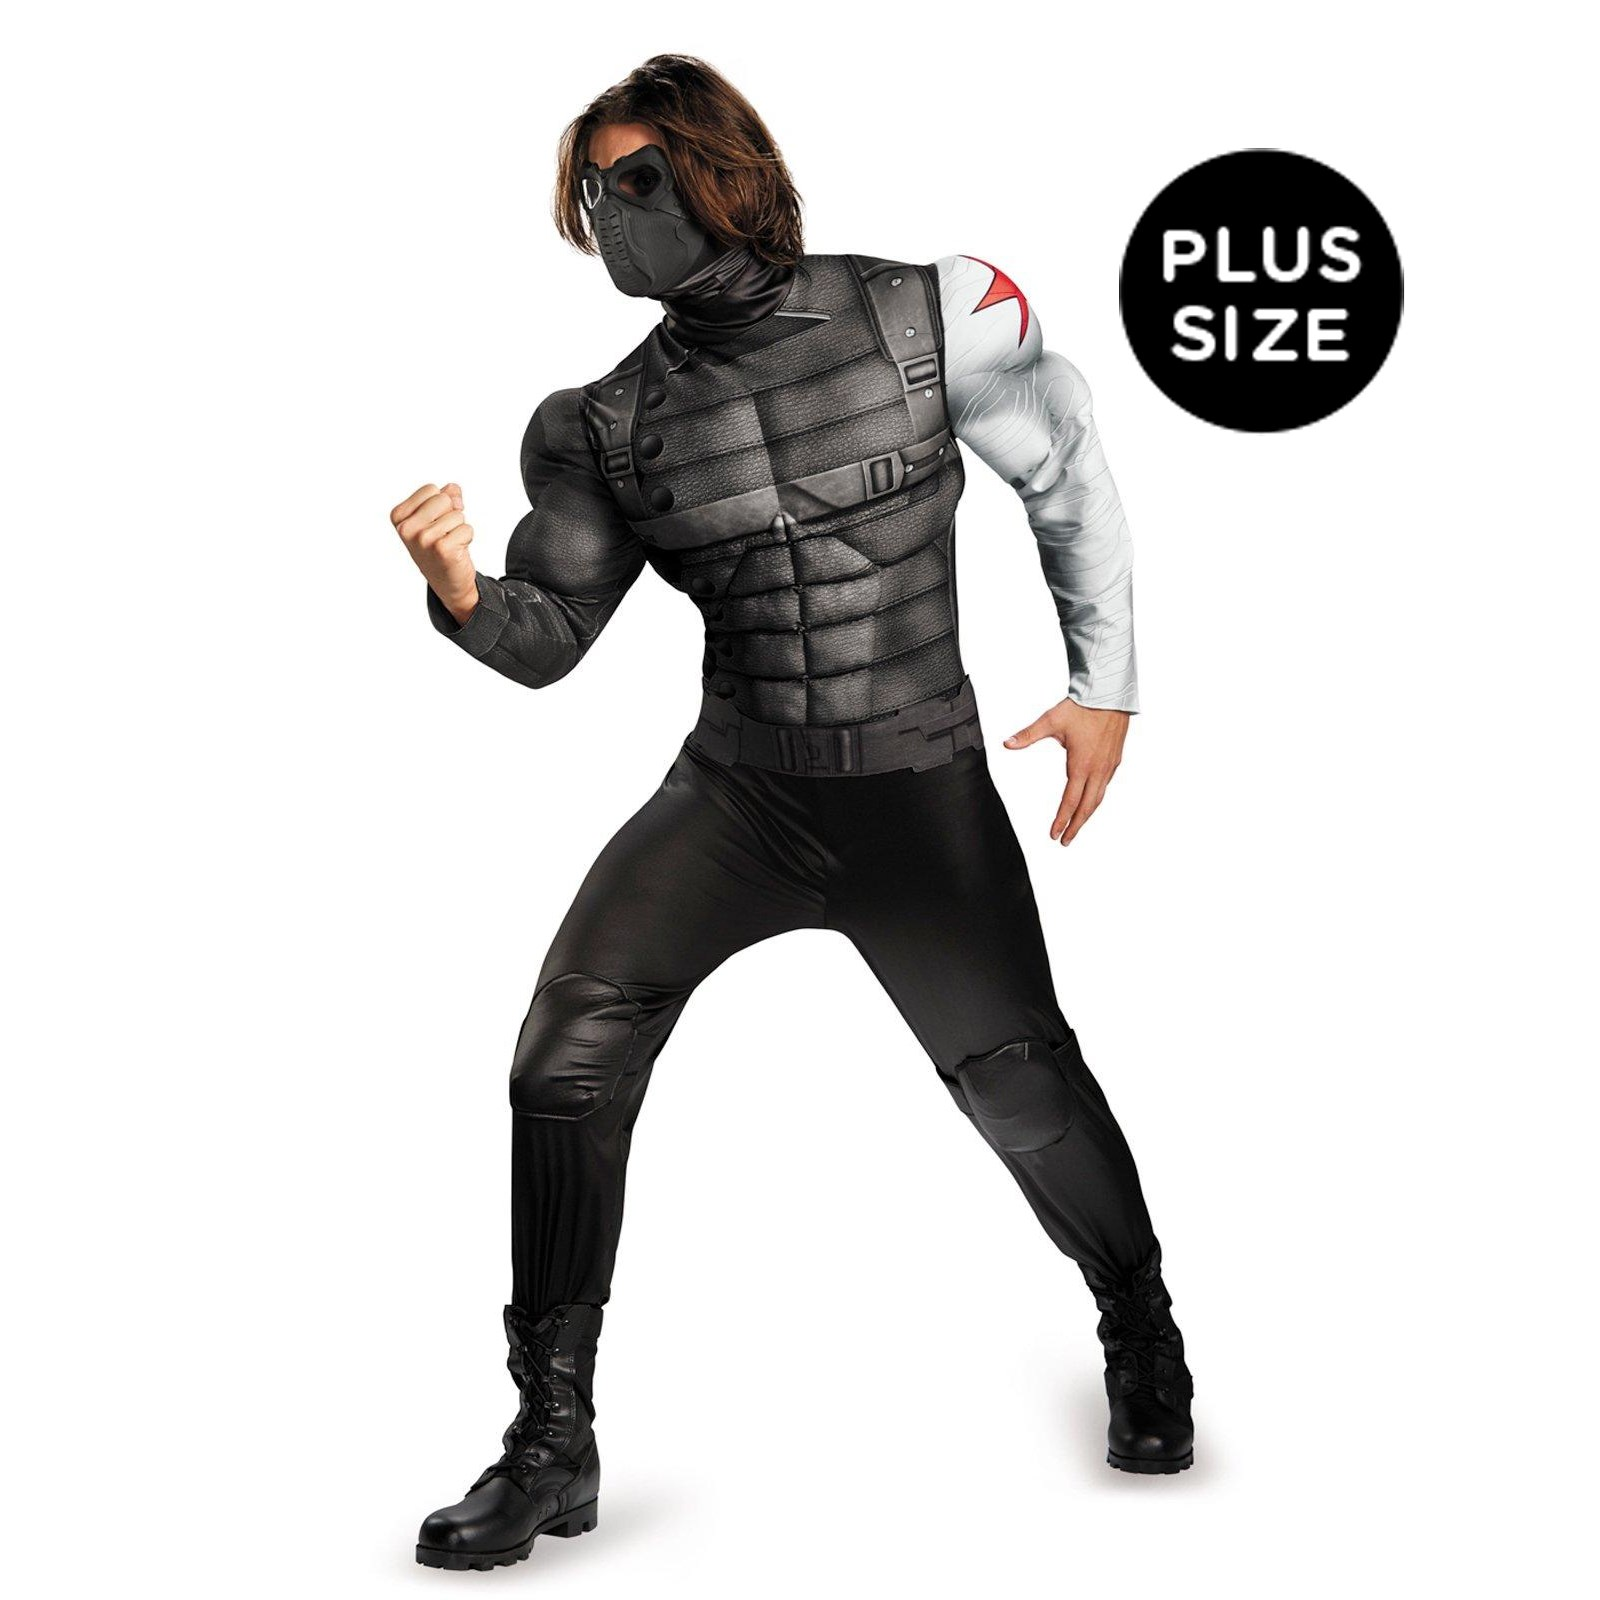 Captain America The Winter Soldier - Winter Soldier Muscle Chest Plus Size Costume